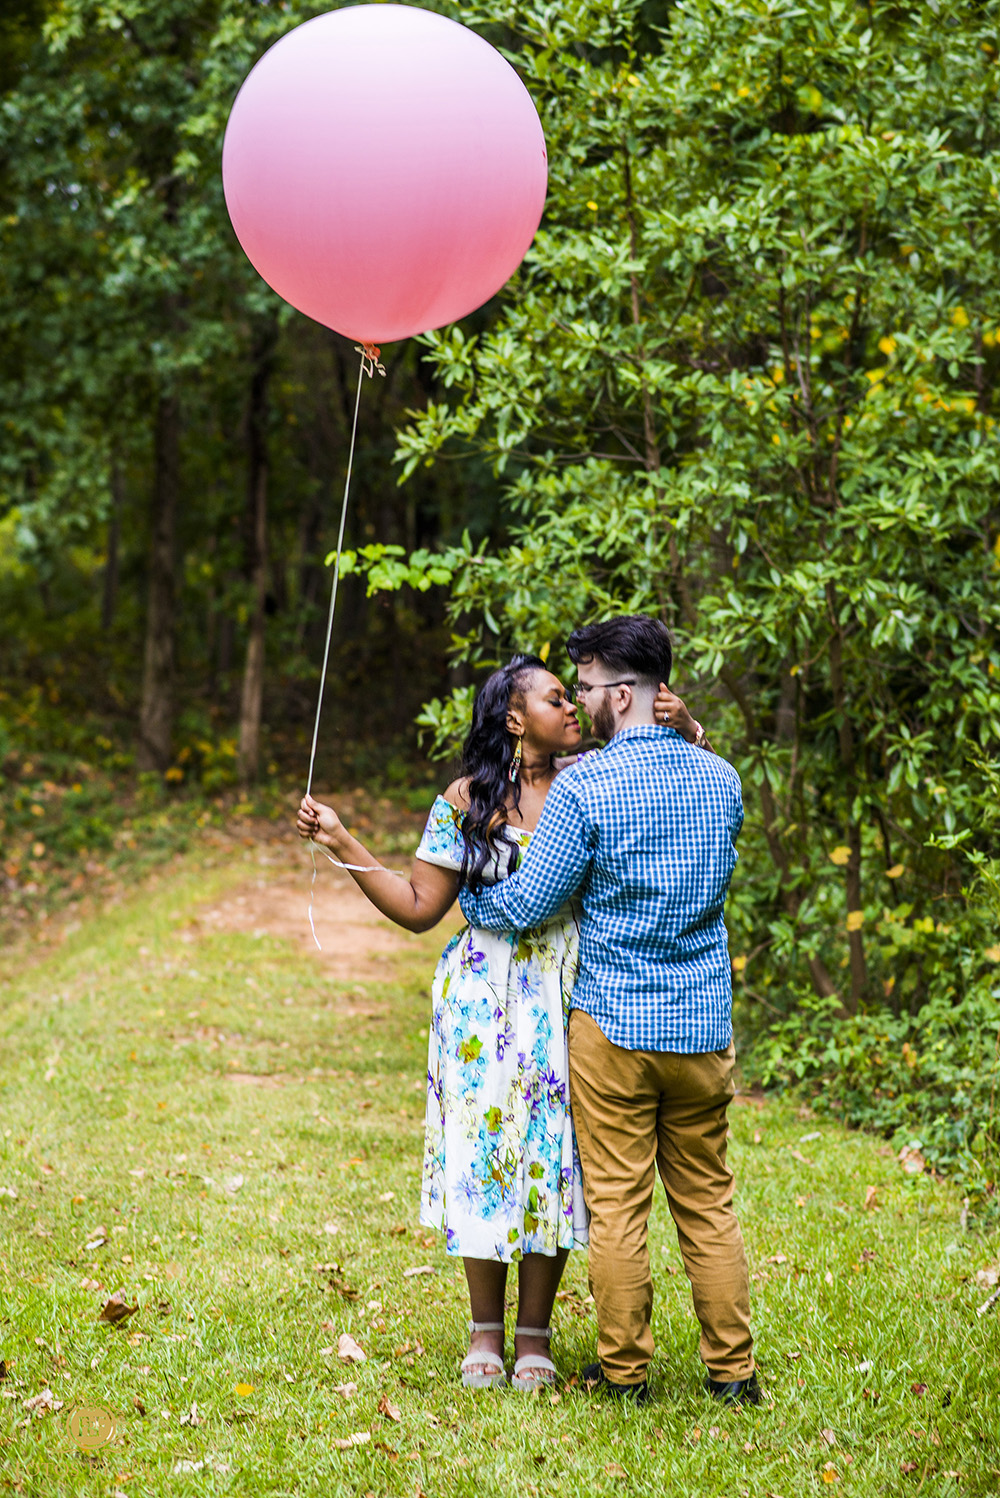 atlanta_picnic_engagement_shoot_01 | Atlanta Wedding Photographer | Fotos by Fola